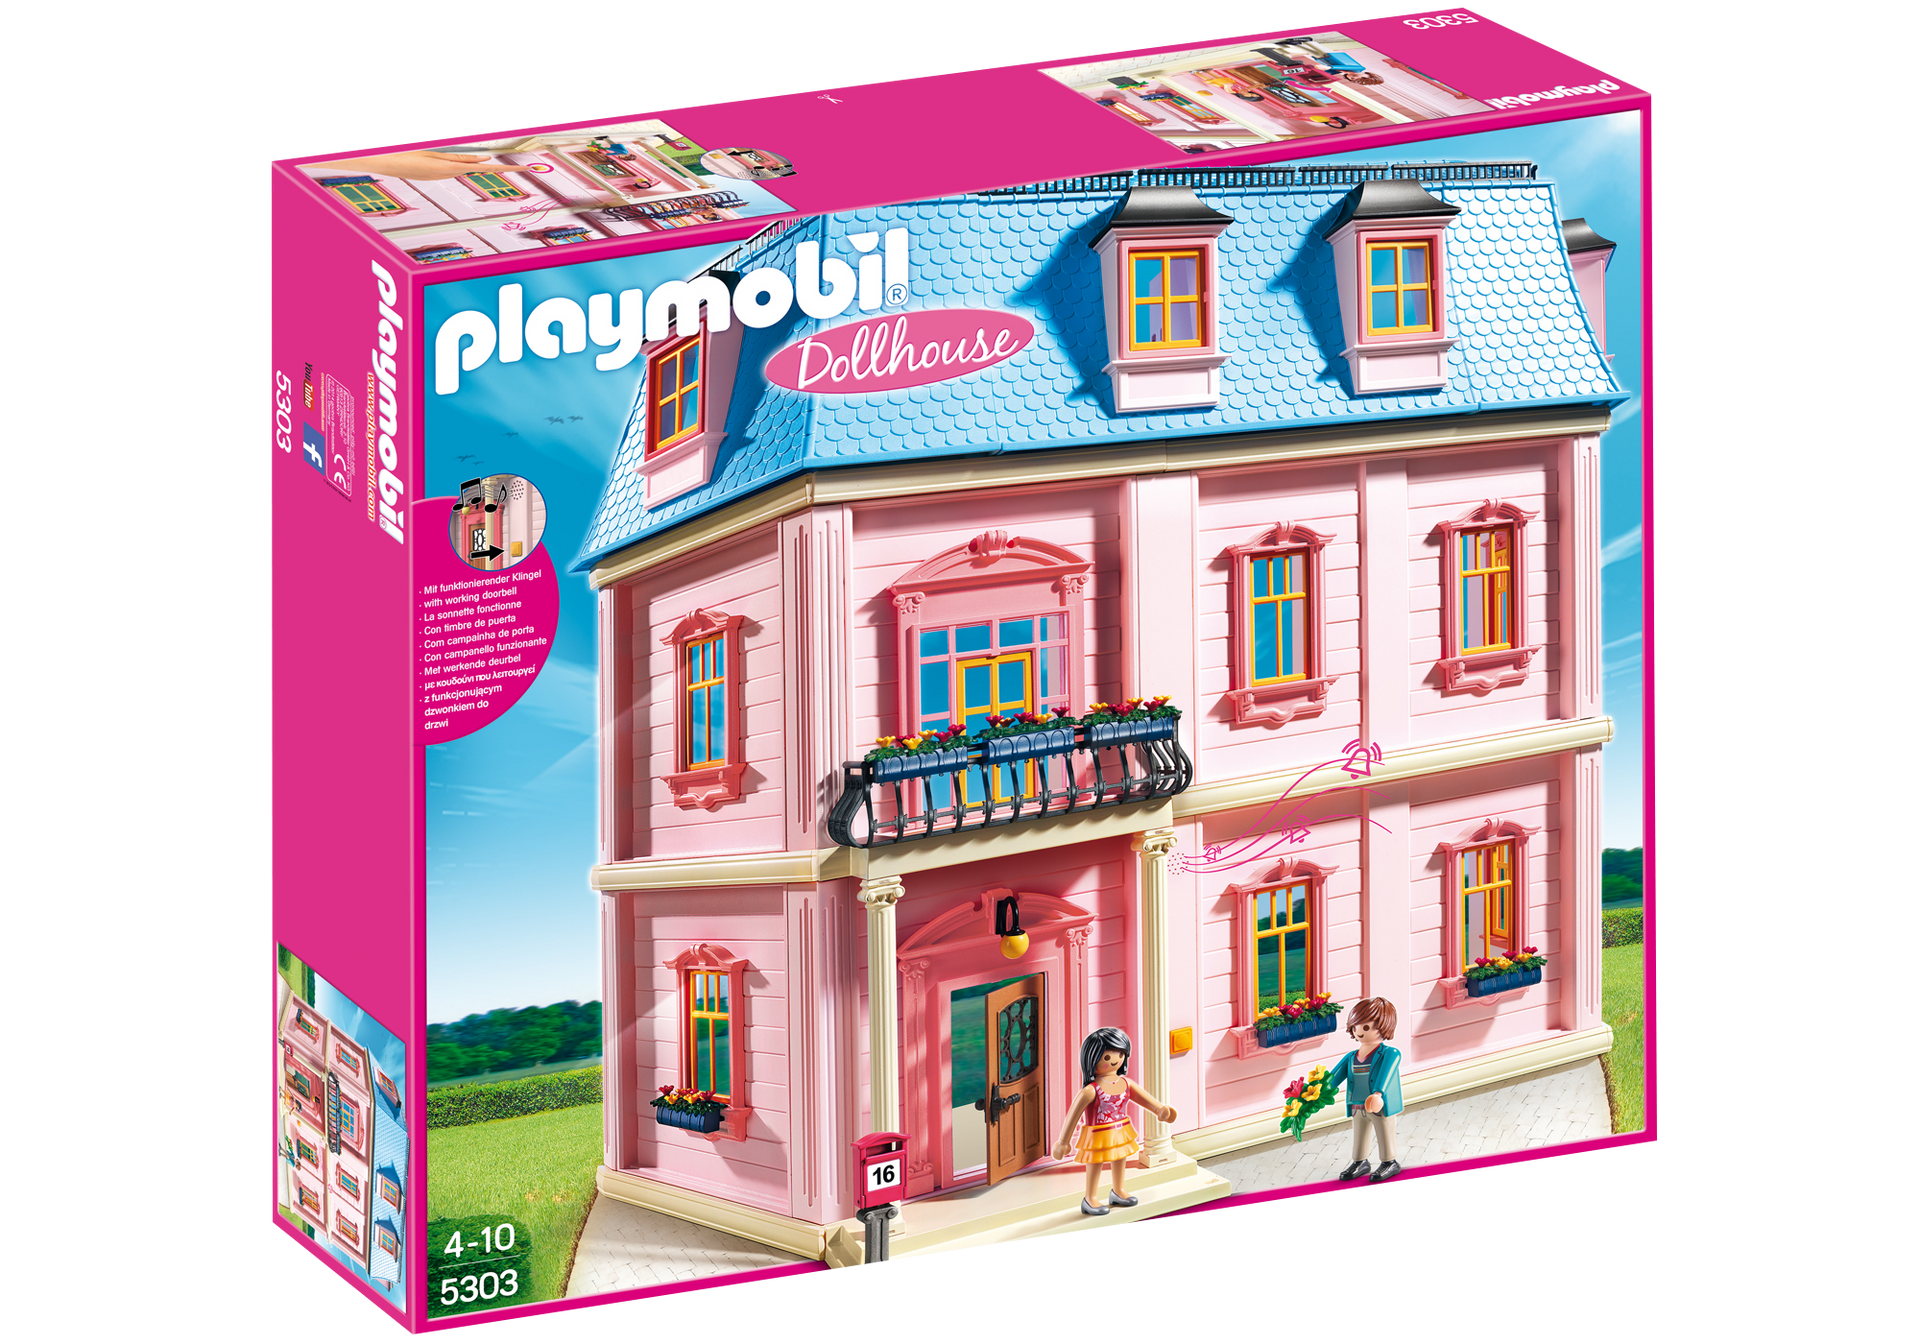 Room clipart dollhouse. Deluxe playmobil usa httpmediaplaymobilcomiplaymobilproductboxfront